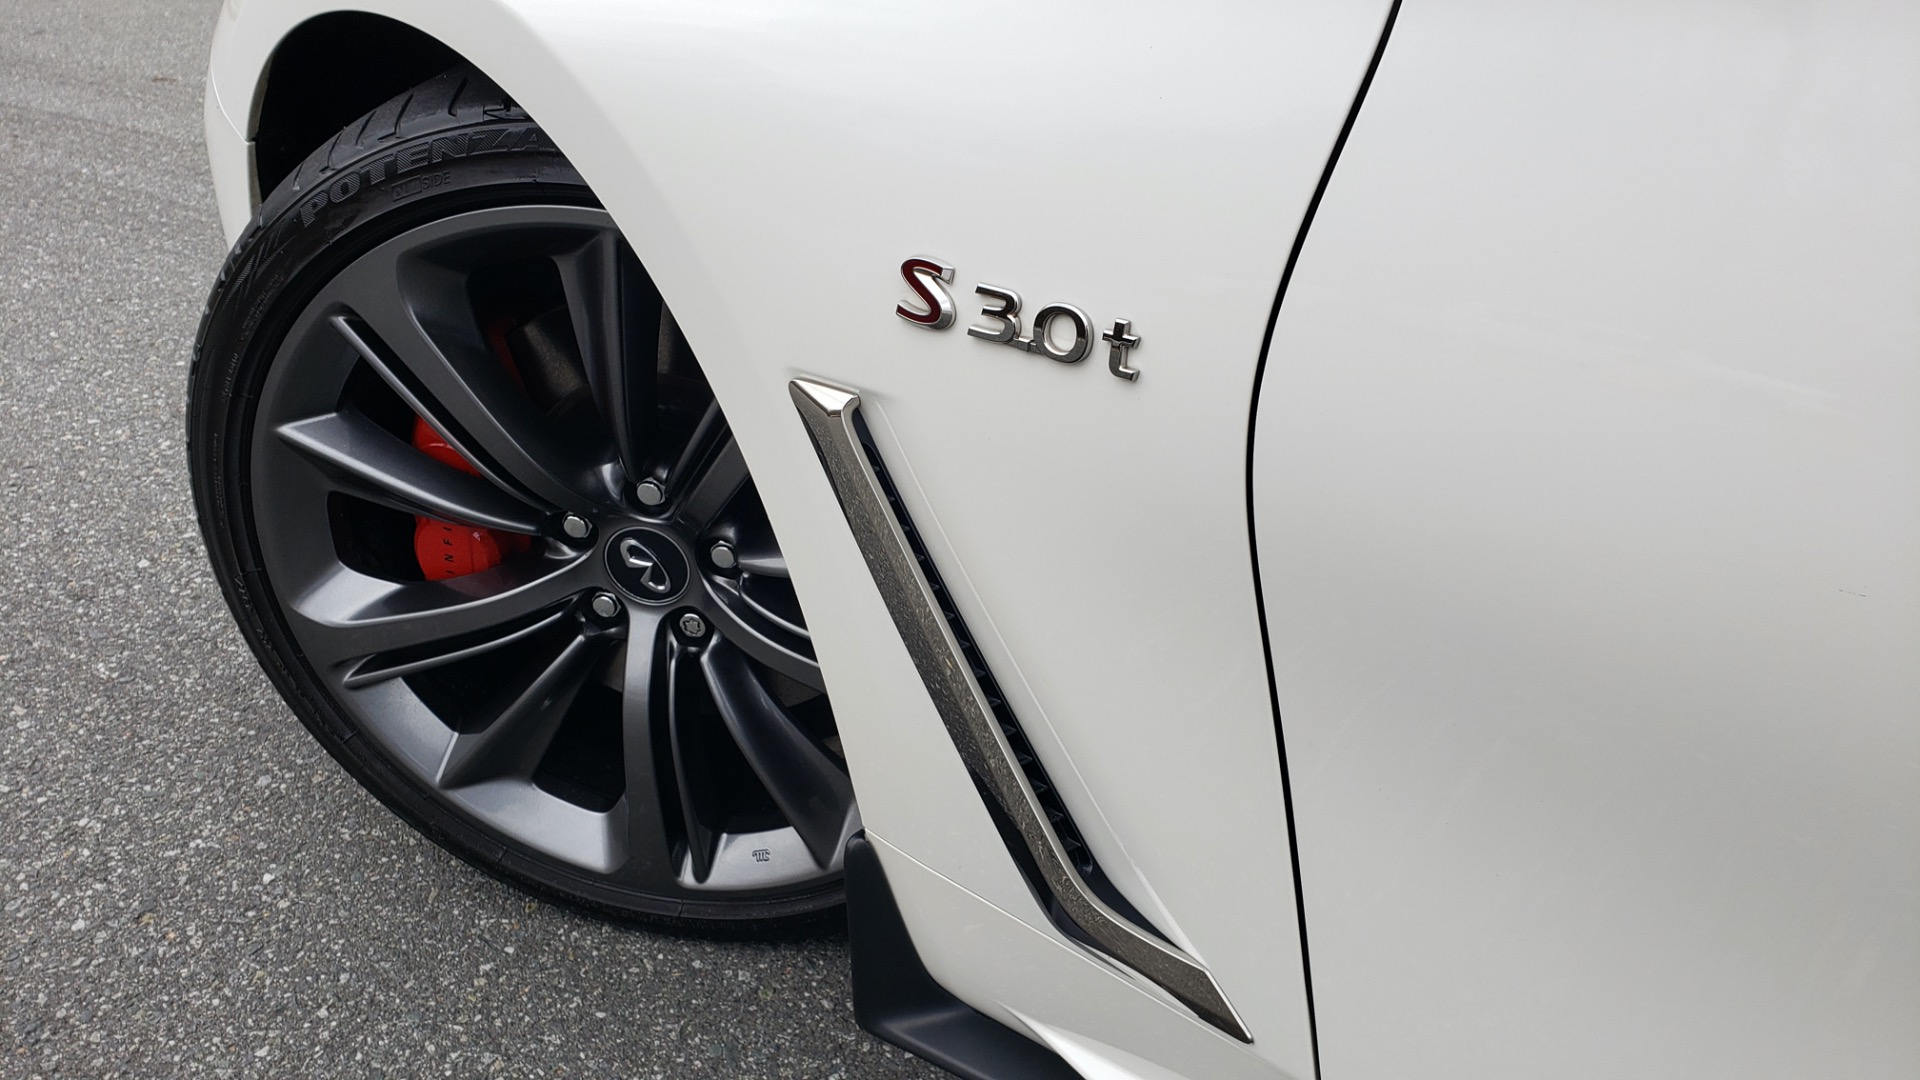 Used 2018 INFINITI Q60 RED SPORT 400 / SENSORY PKG / SUNROOF / NAV / REARVIEW for sale Sold at Formula Imports in Charlotte NC 28227 10